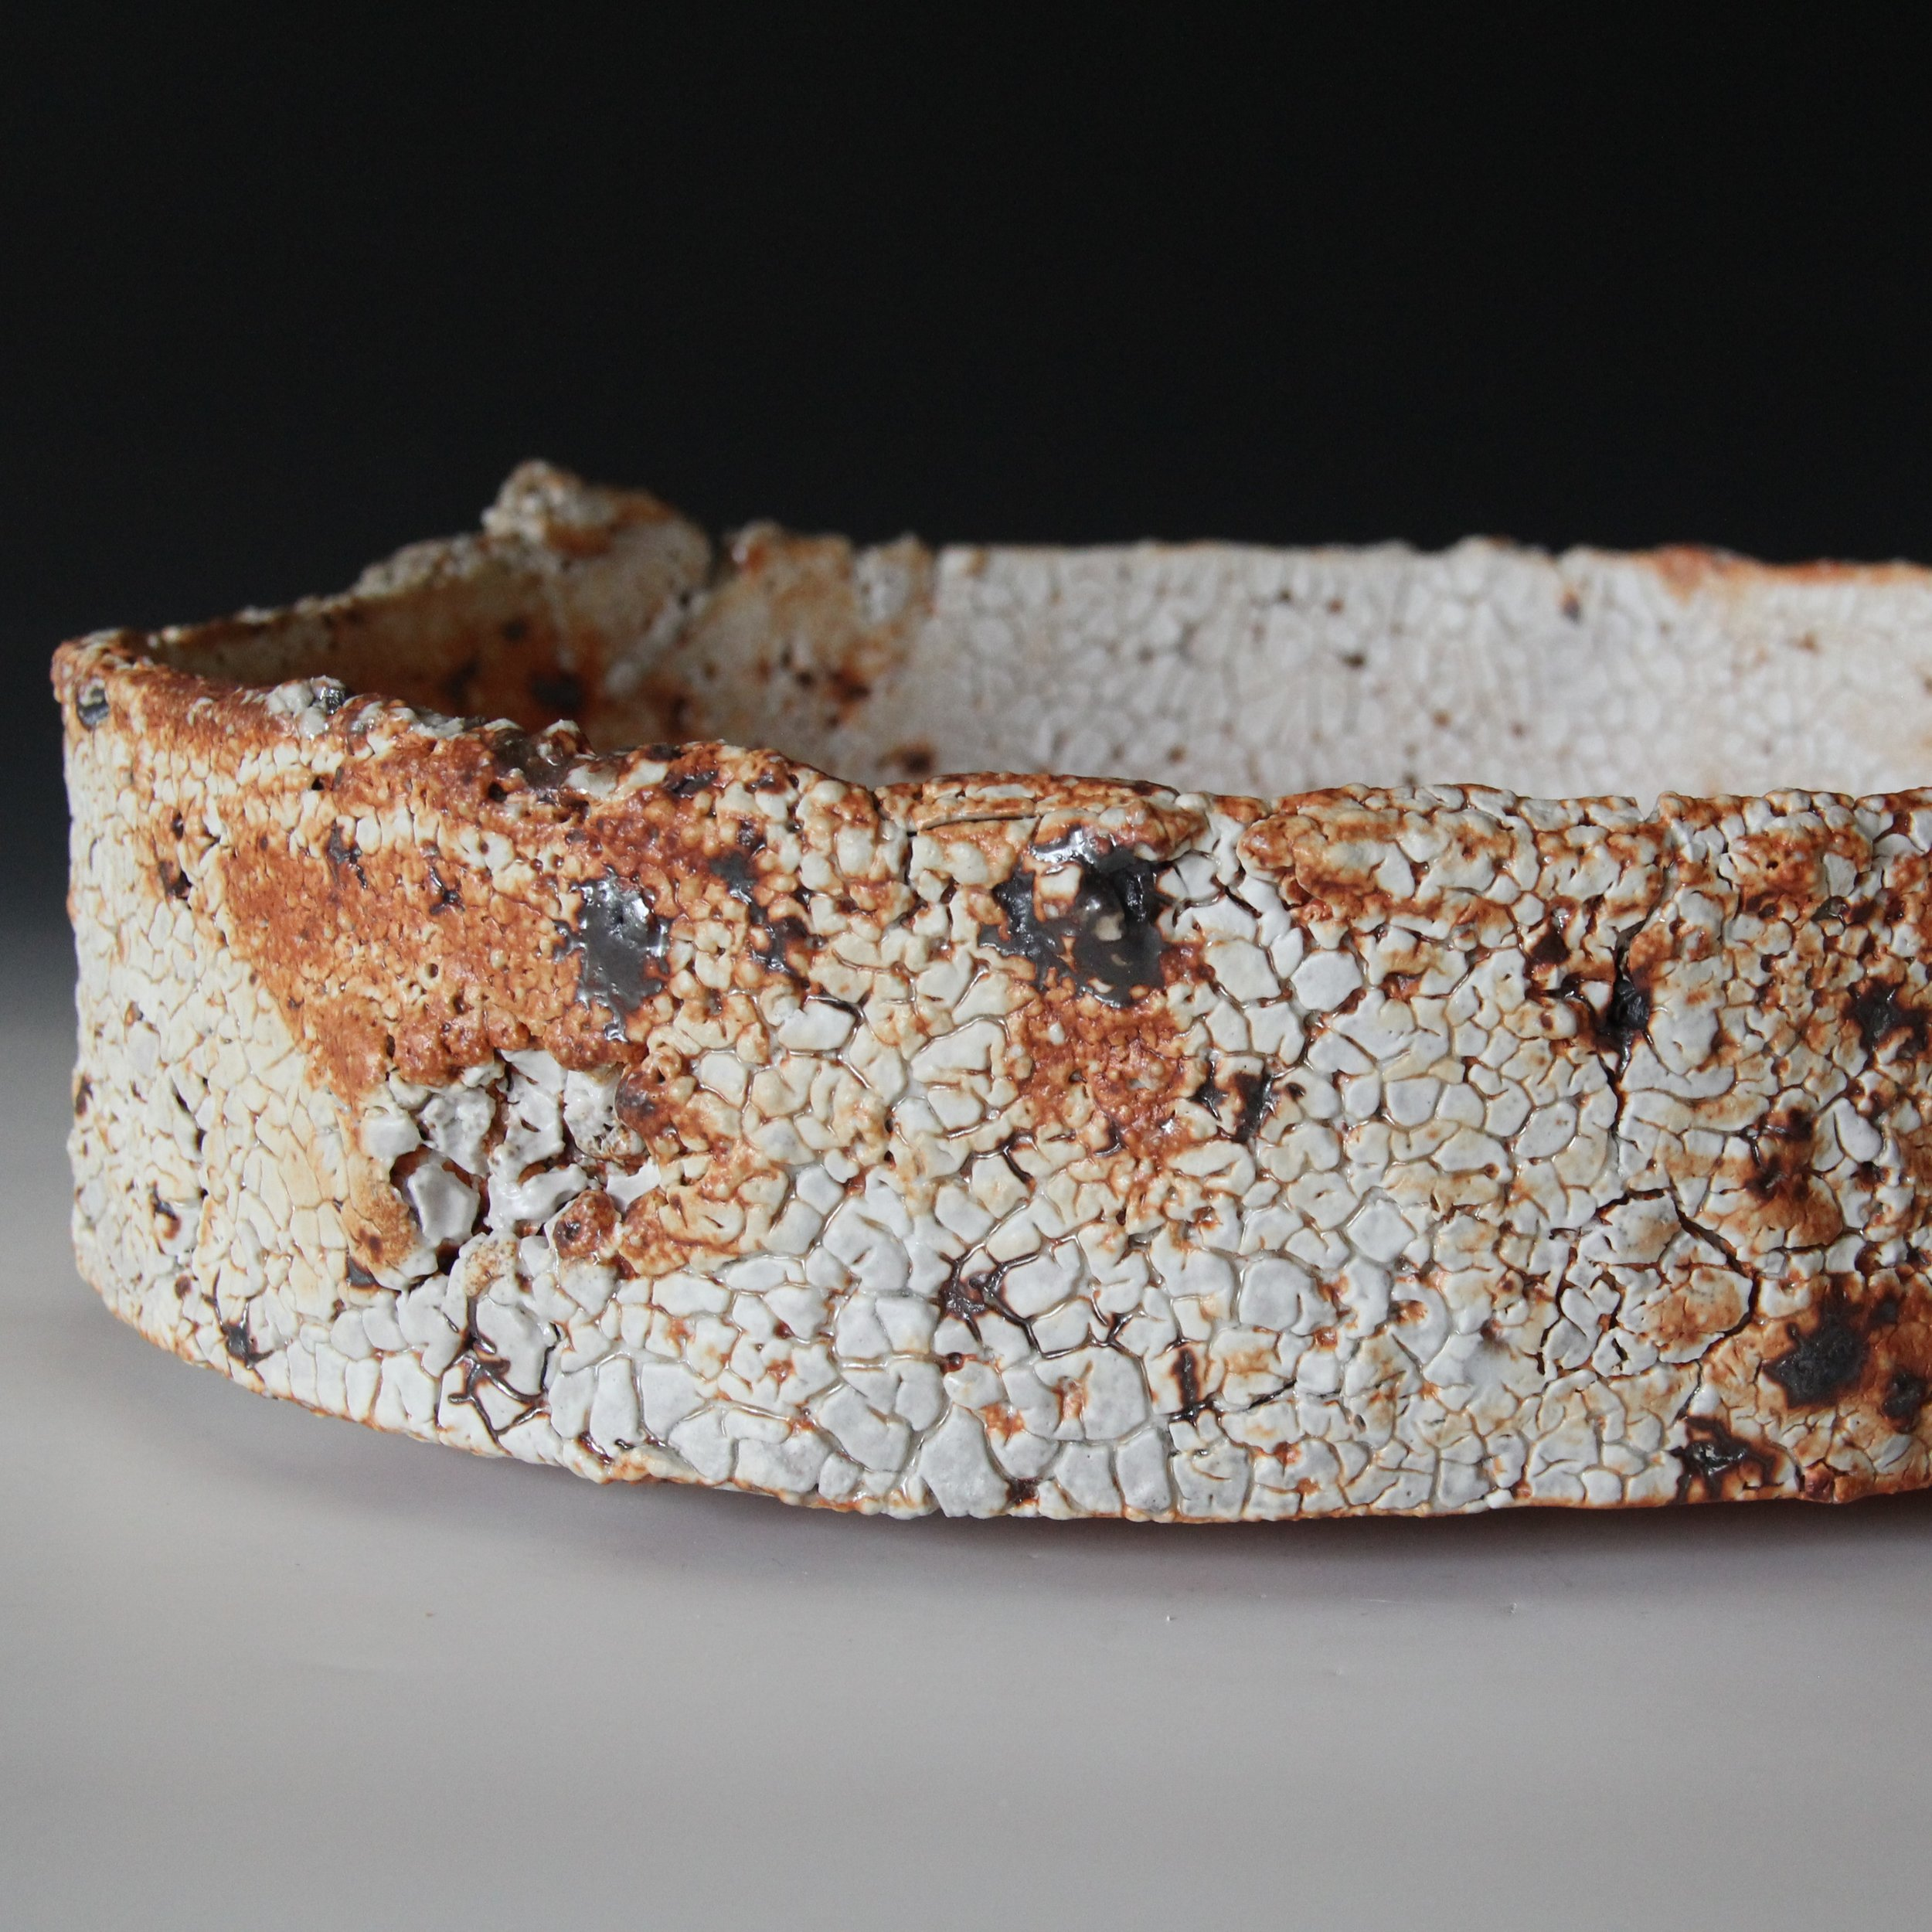 1f. Sandy Lockwood - 'Subduction Series' -  bowl - woodfired saltglazed stoneware- 33 x 9.5cm IMG_0317 (2).JPG